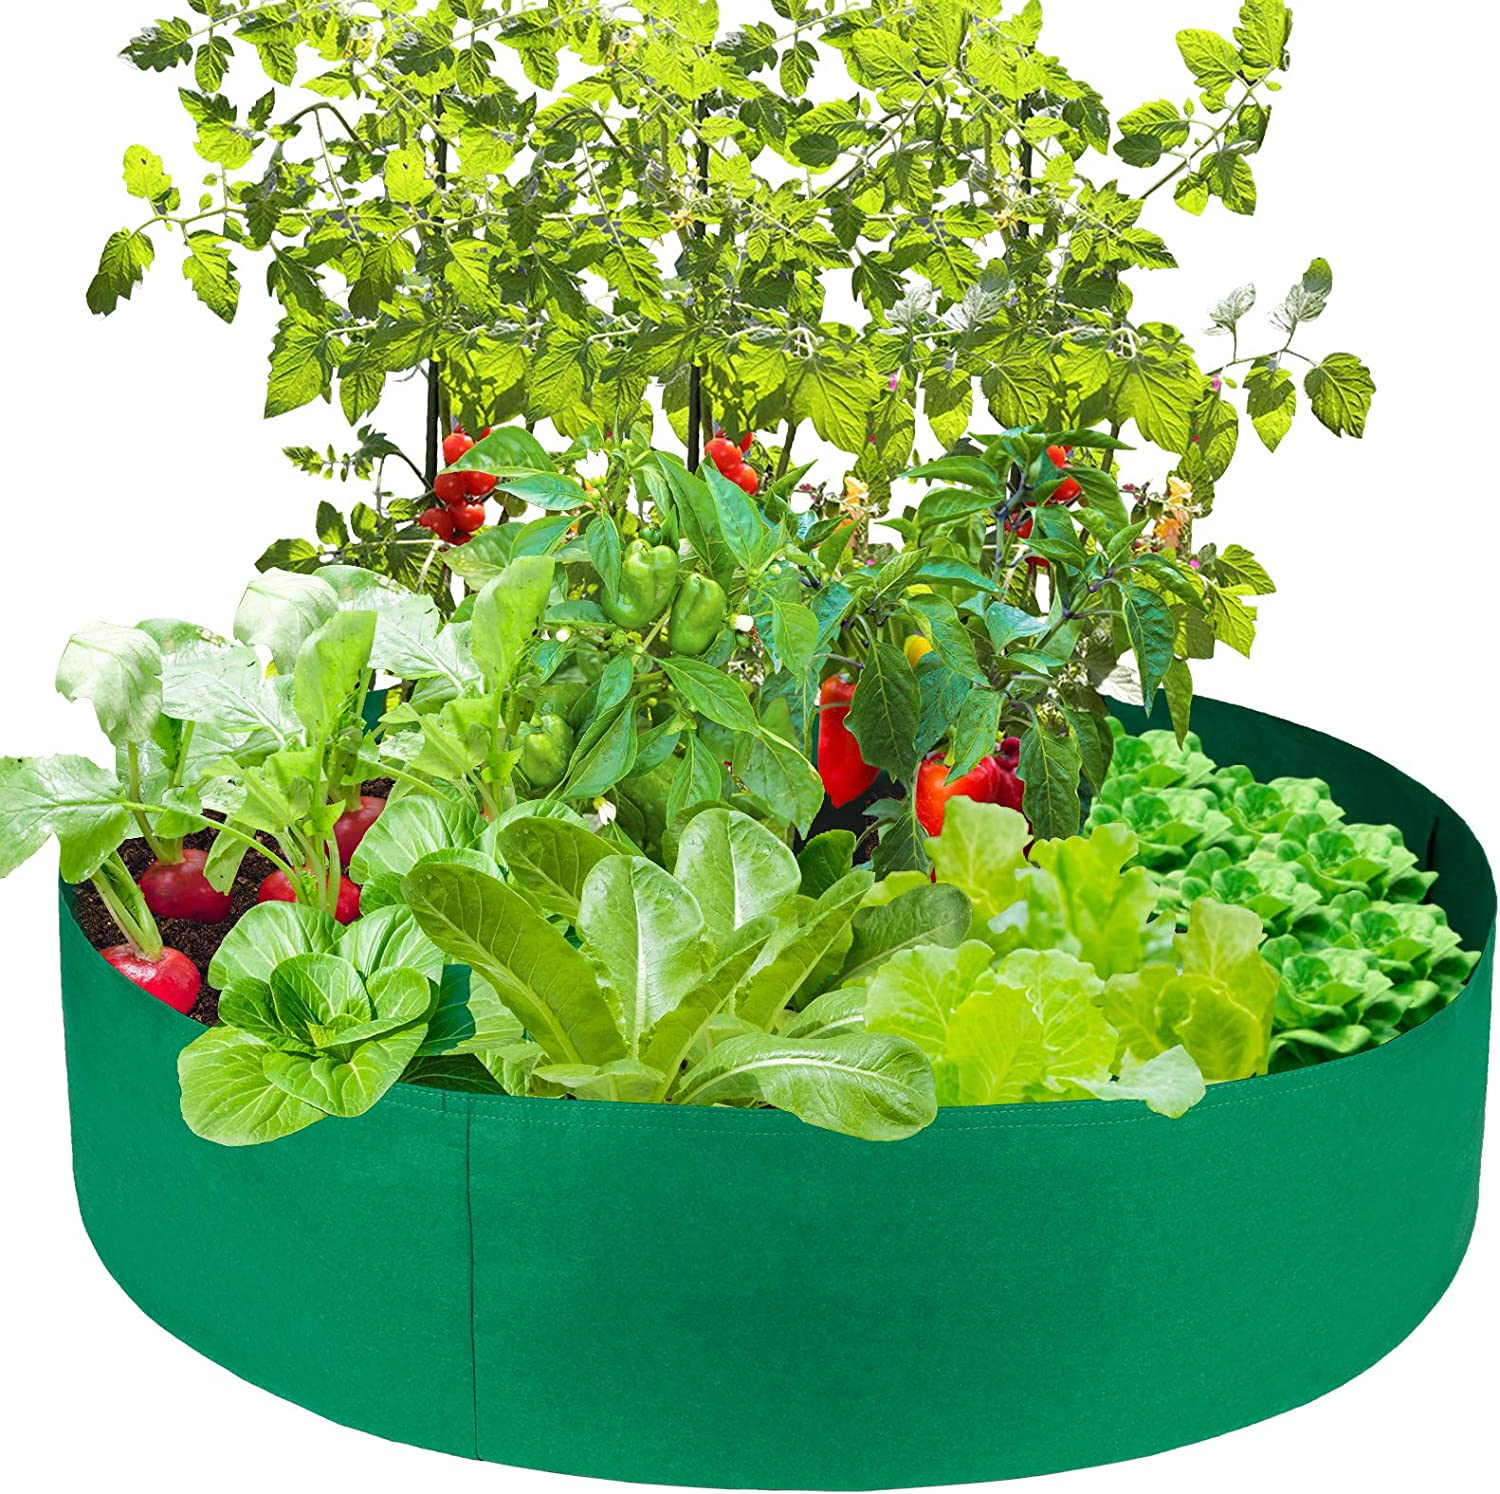 MSUIINT Max 48% OFF Max 85% OFF Raised Garden Bed Round Fabric Planting Felt